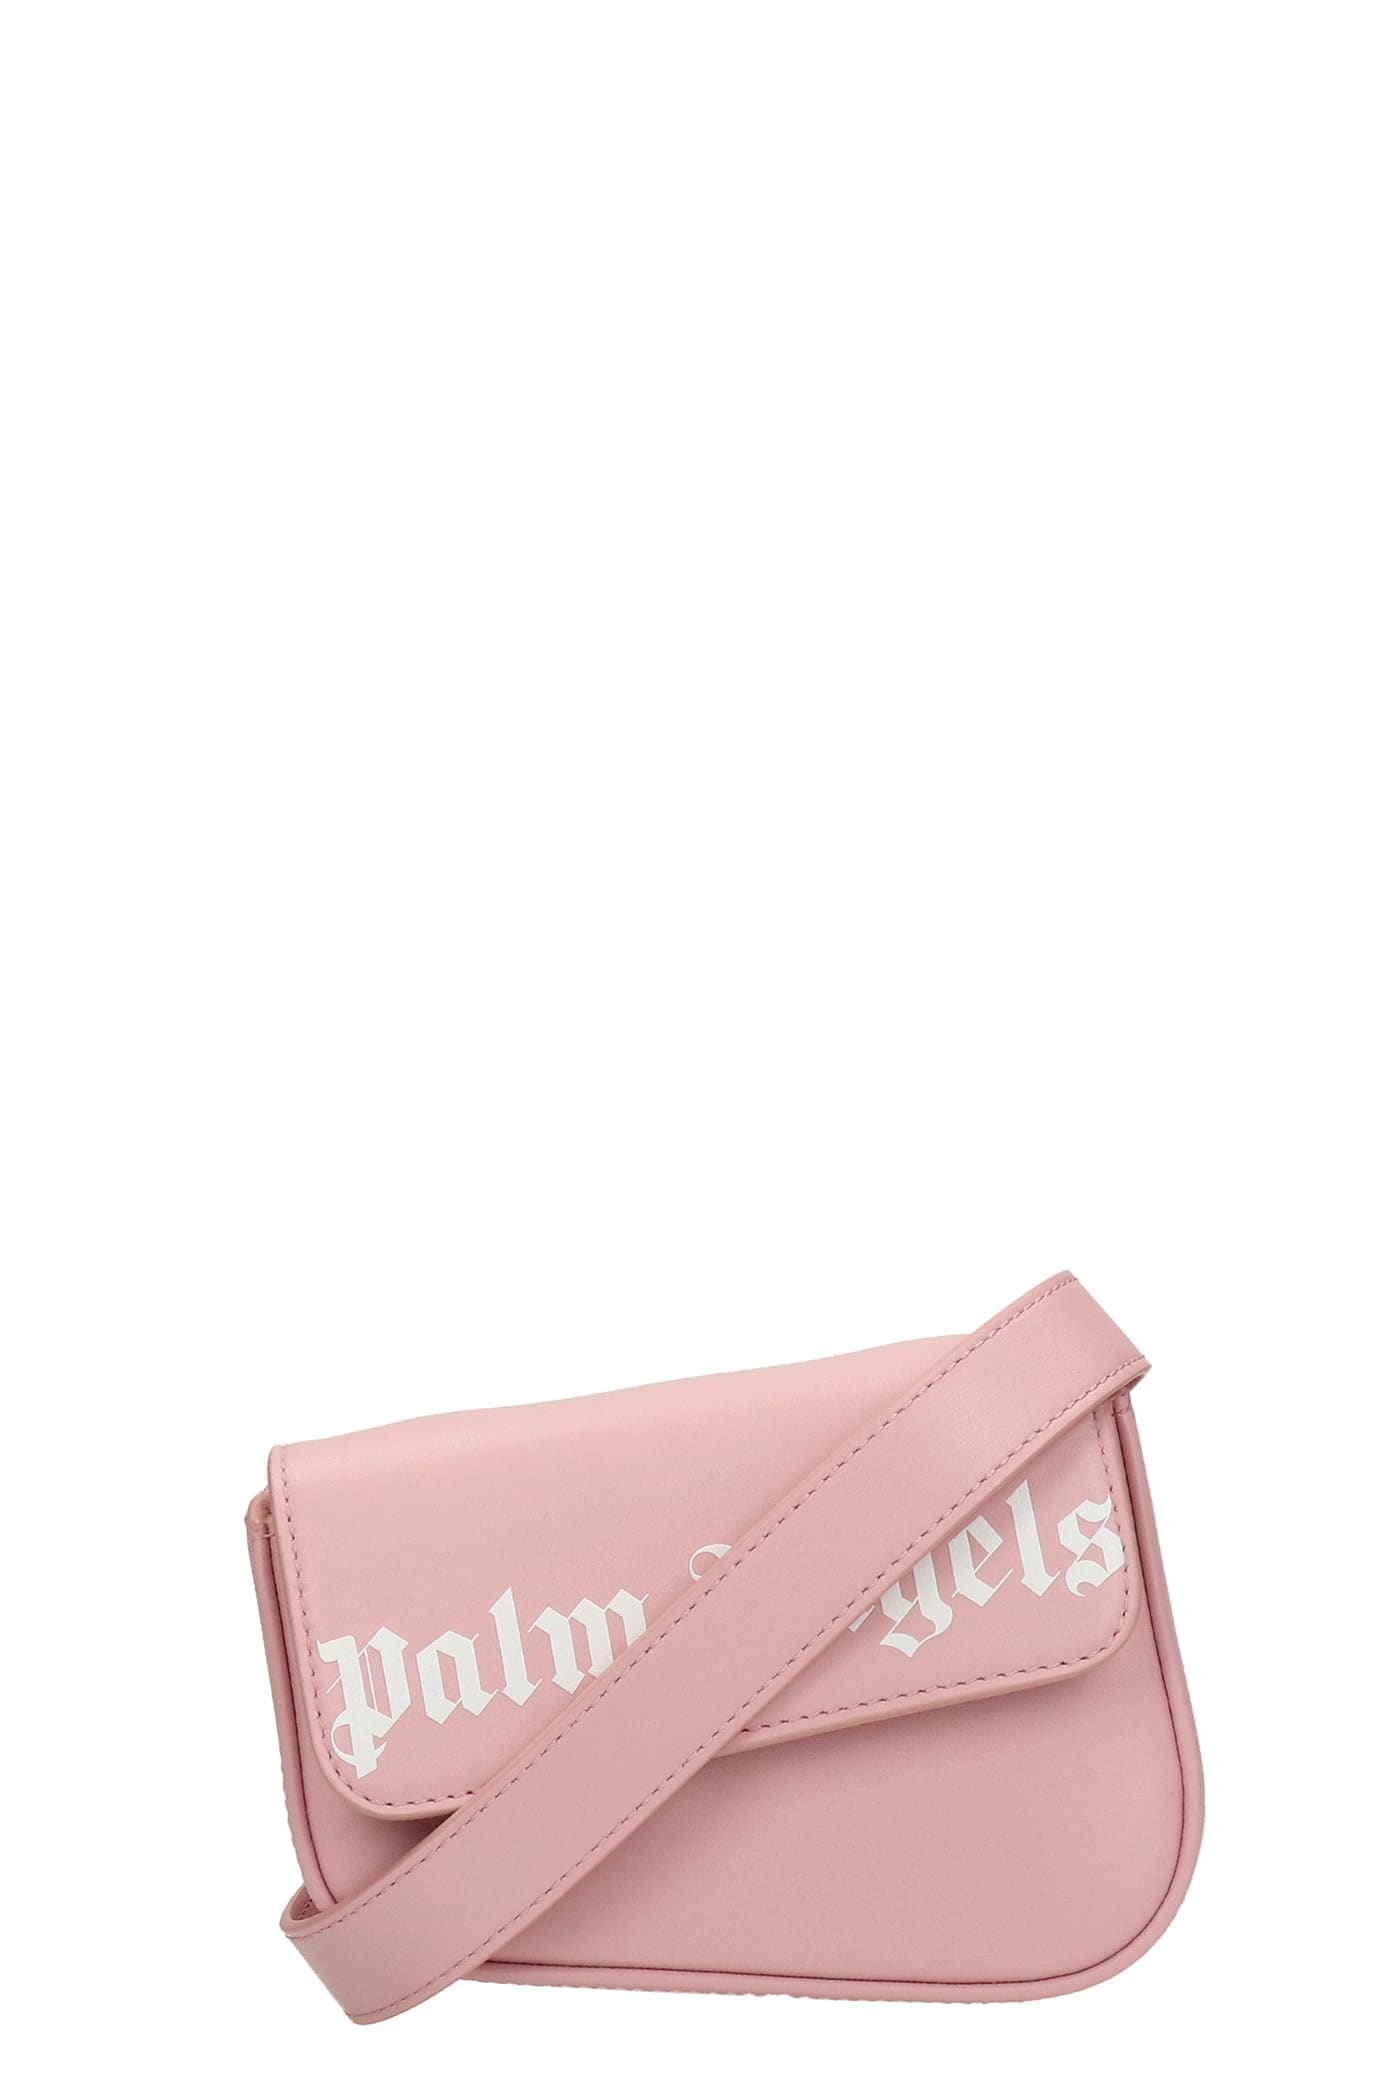 Palm Angels Waist Bag In Rose-pink Leather